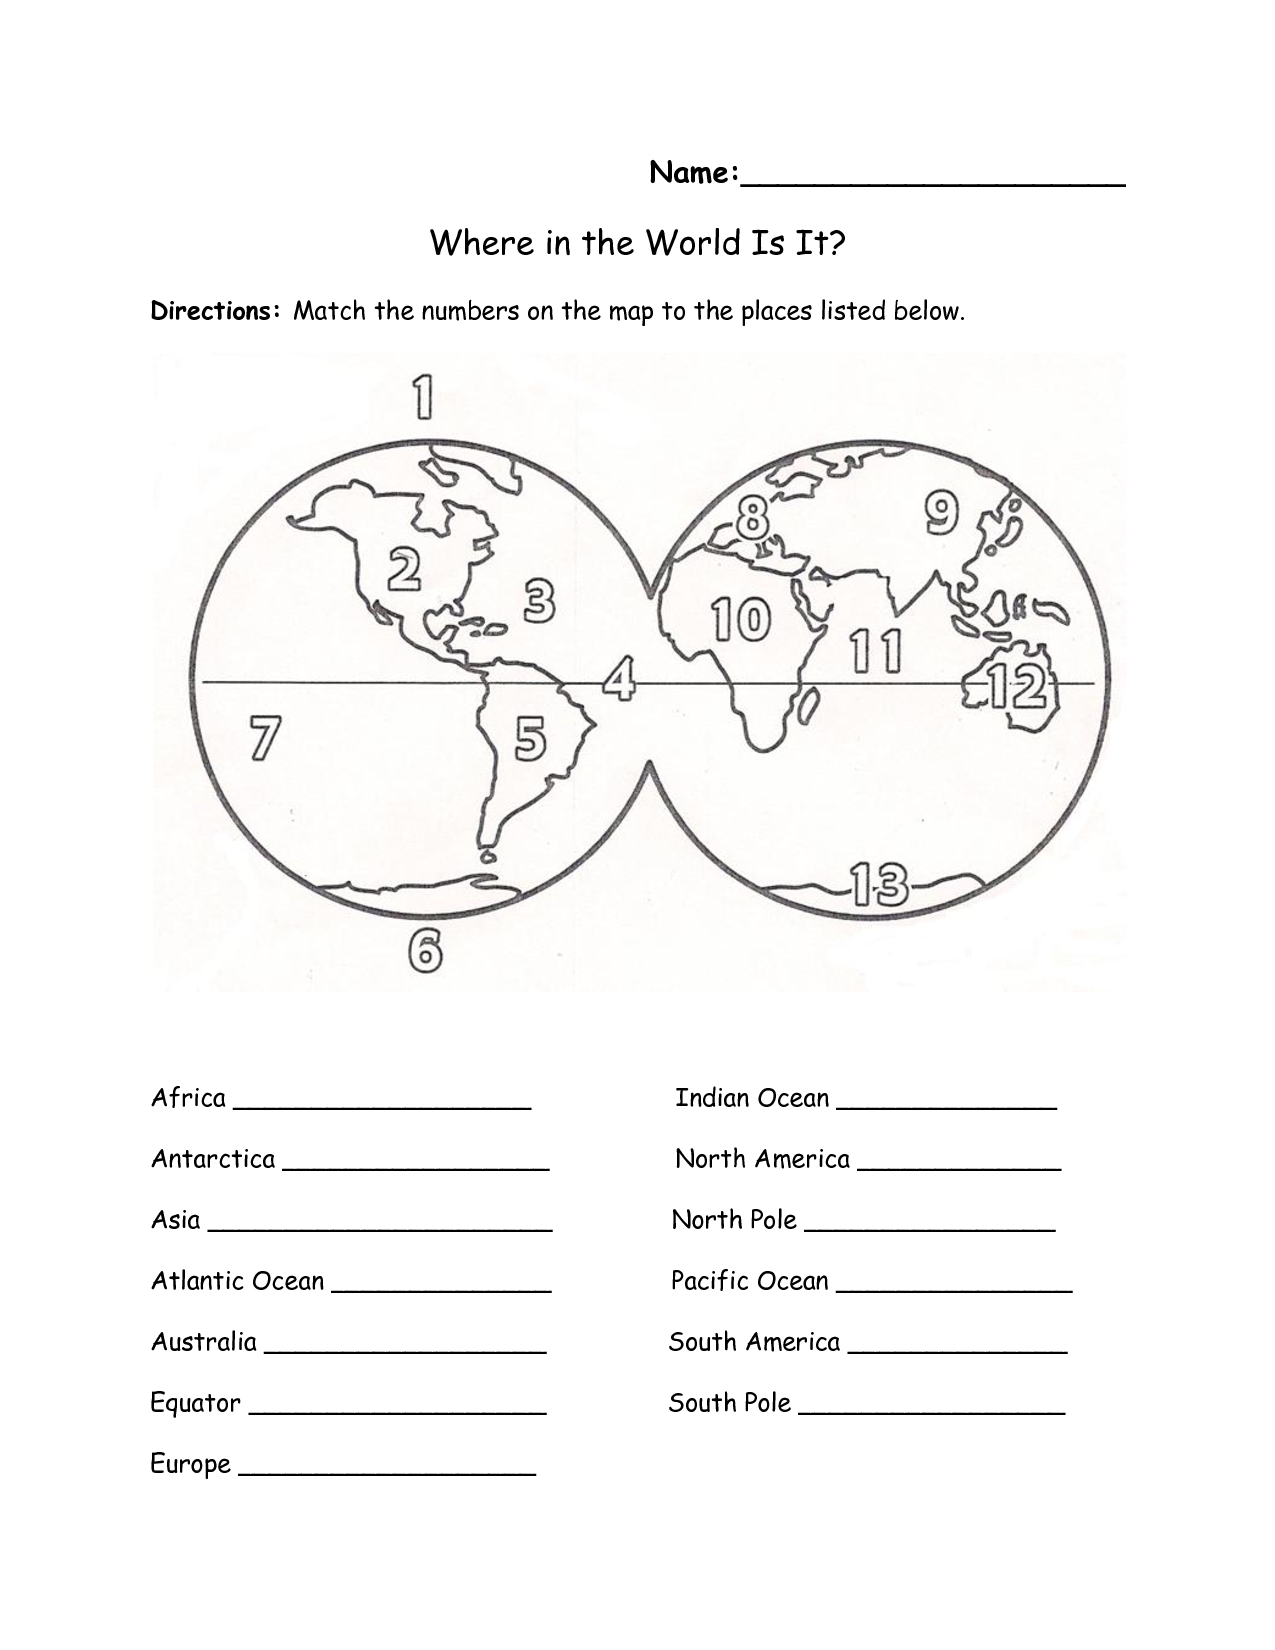 Printables continents and oceans of the world worksheet label continents oceans worksheet continents and oceans worksheet free gumiabroncs Choice Image